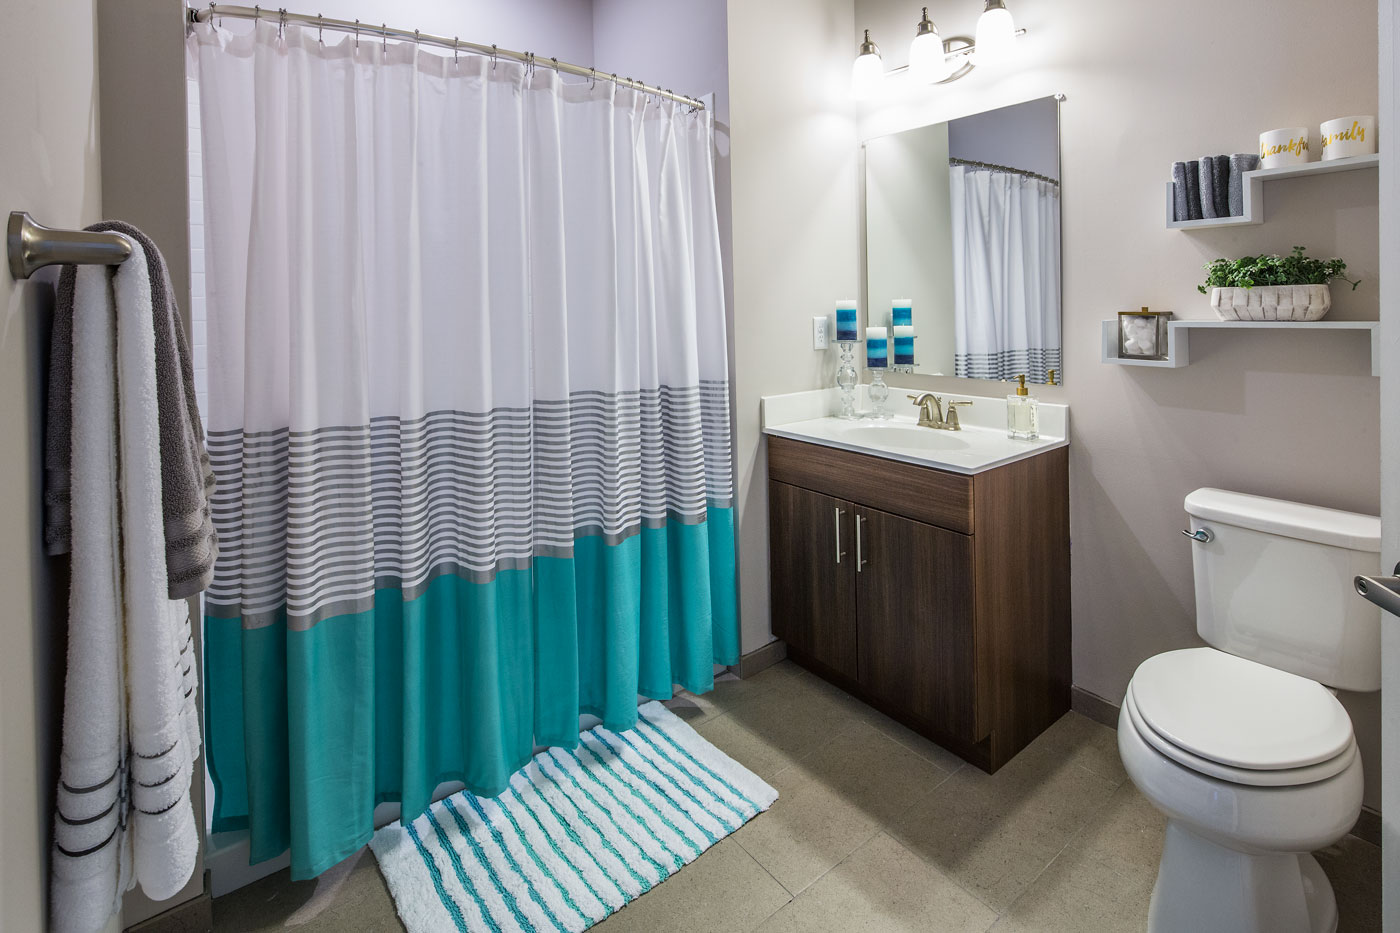 bathroom with vanity, walk in shower, large mirror, shelving, and toilet - apartments near christiana mall